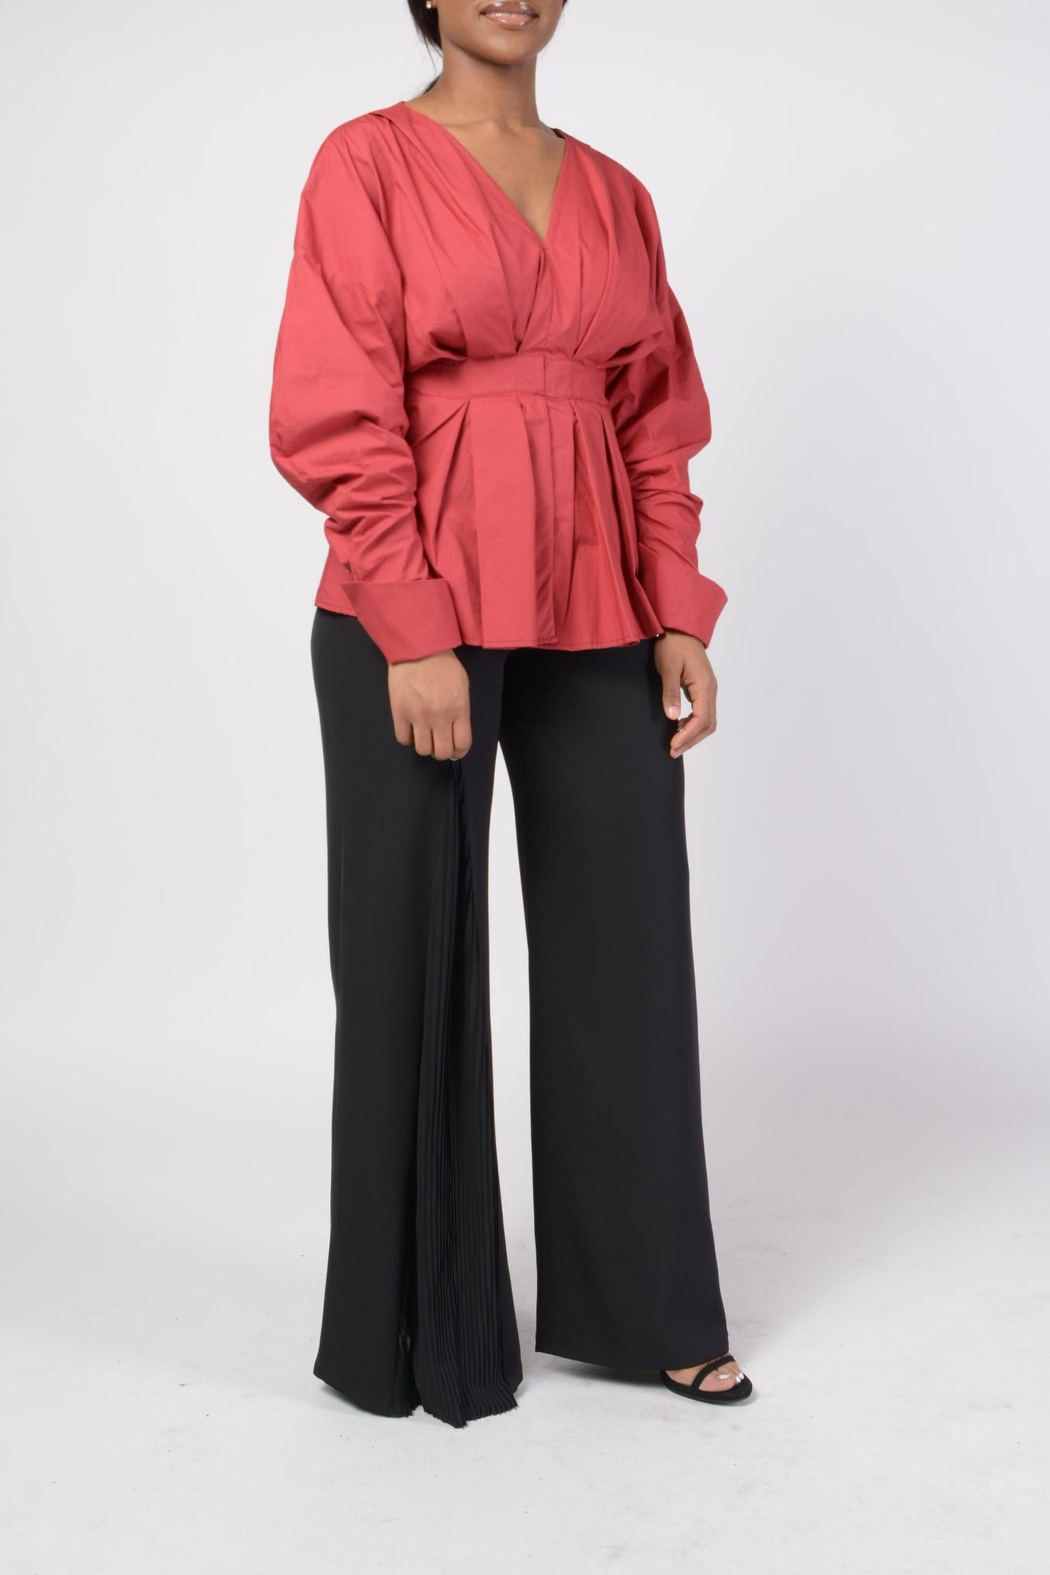 MODChic Couture Hayden Peplum Top - Side Cropped Image